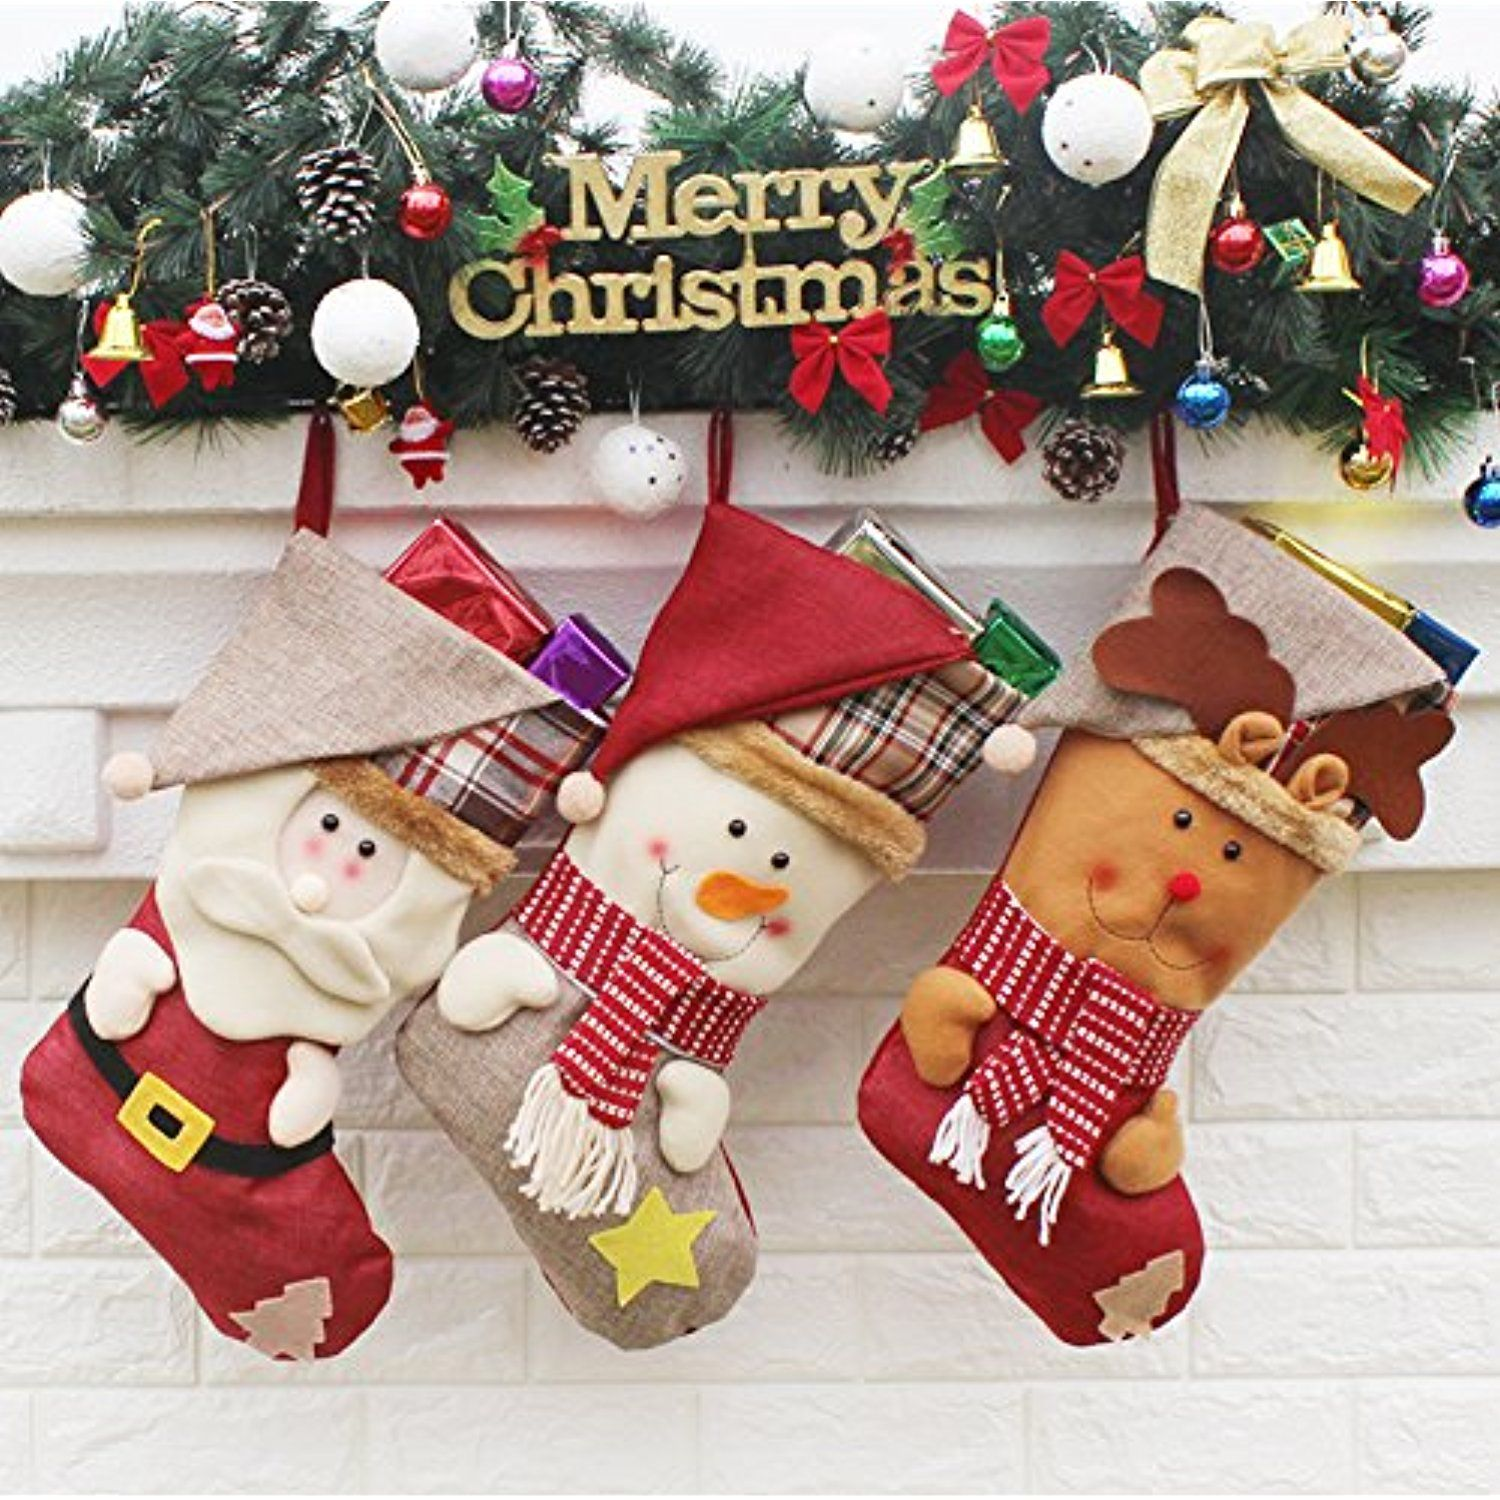 ancitac christmas stockings hanging set 17 large holiday gift bags bulk stocking kit for xmas tree or fireplace decorationtype a check this awesome